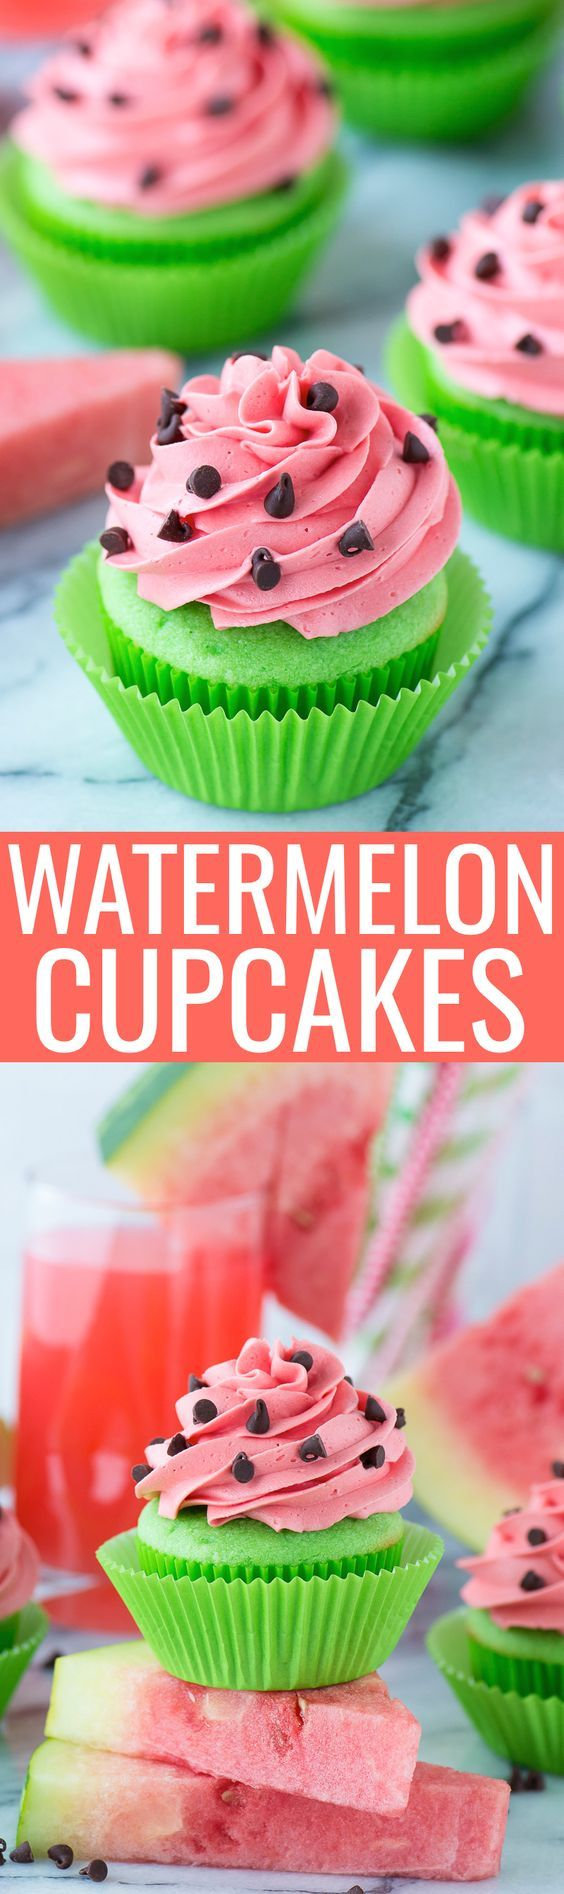 Watermelon Cupcakes | The First Year